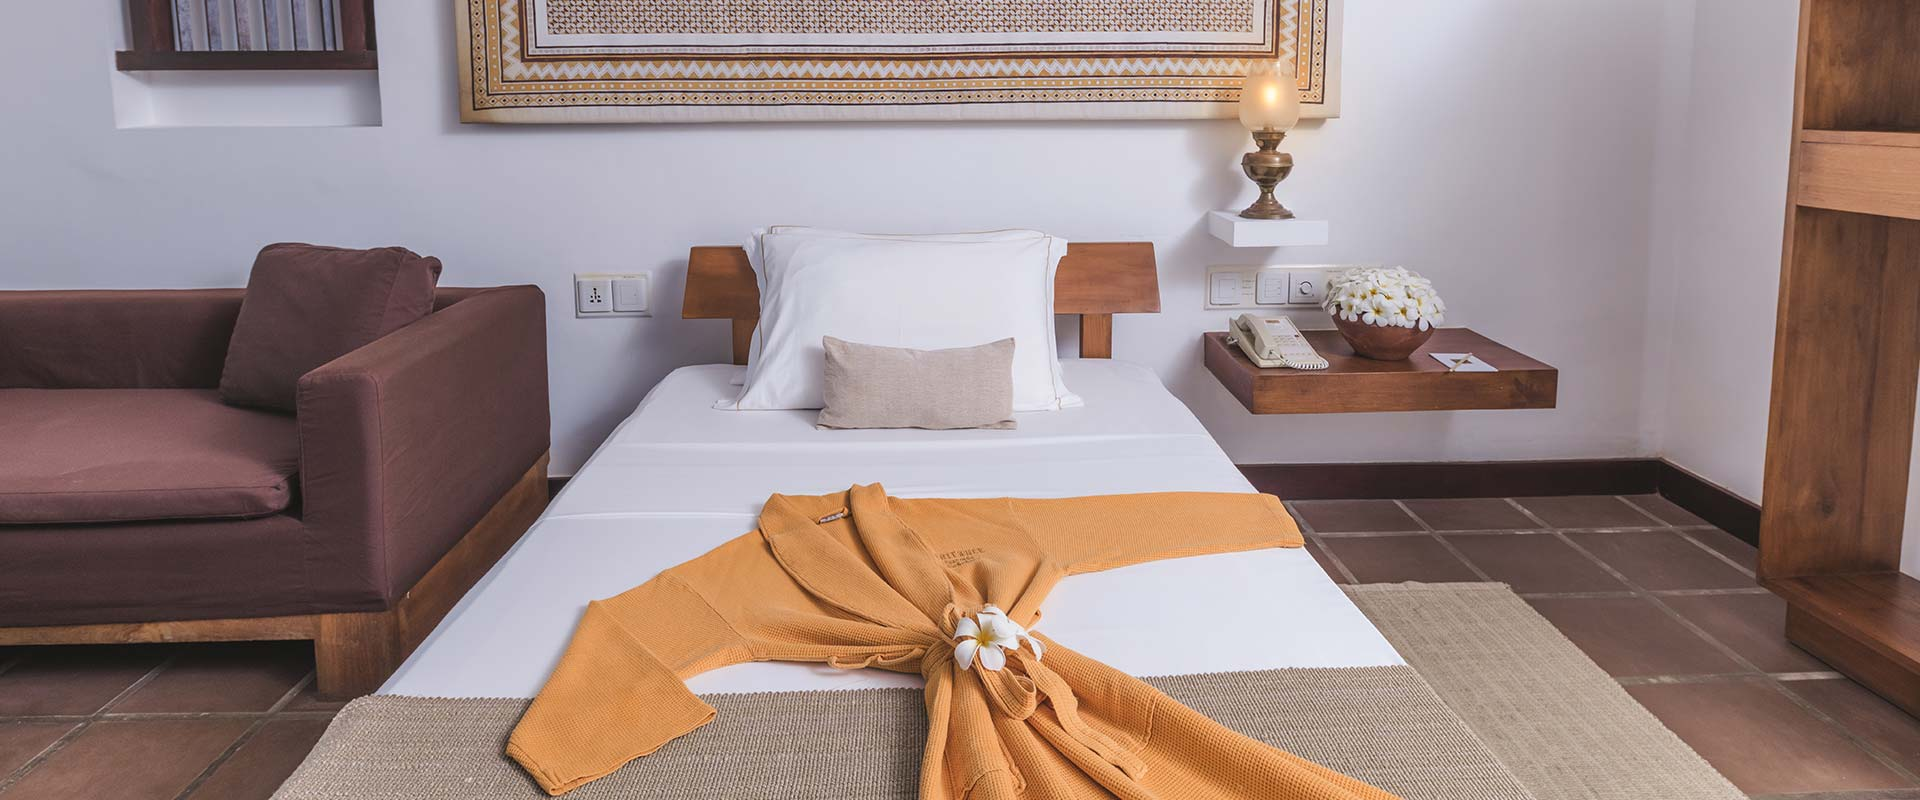 Luxury Bed at Heritance Ayurveda accommodation